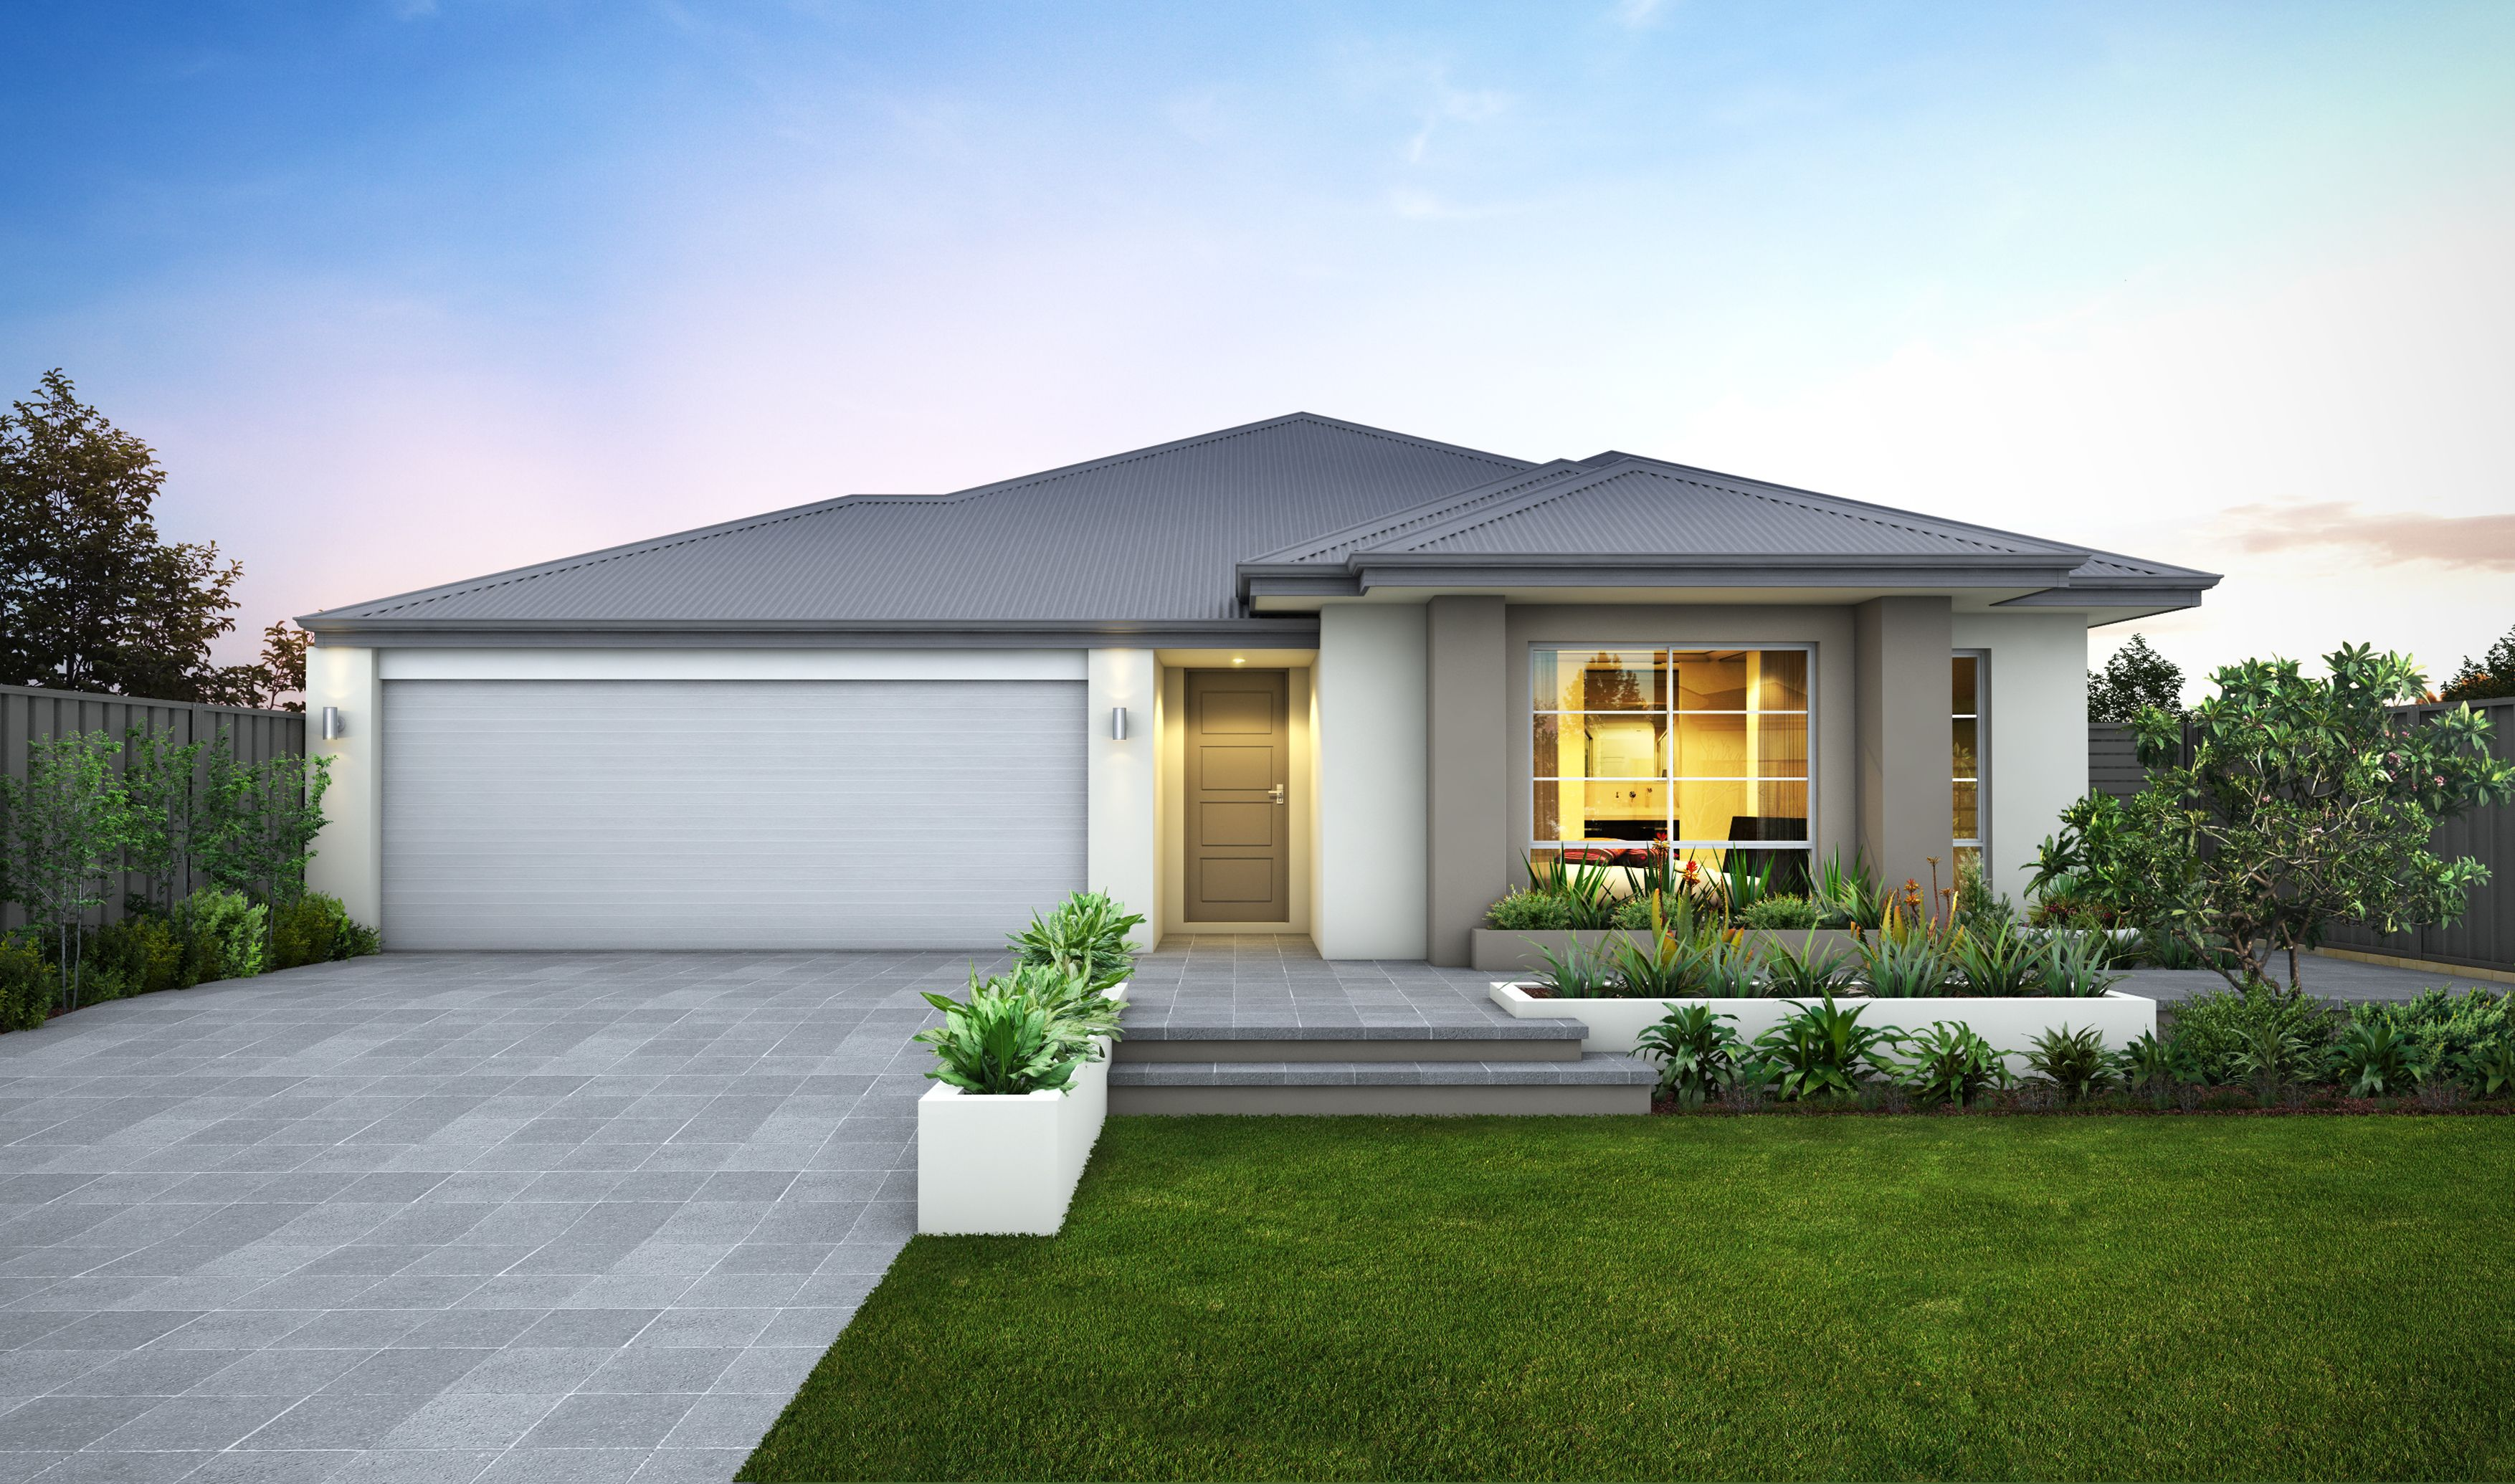 front portico designs australia - Google Search | Building ideas ...